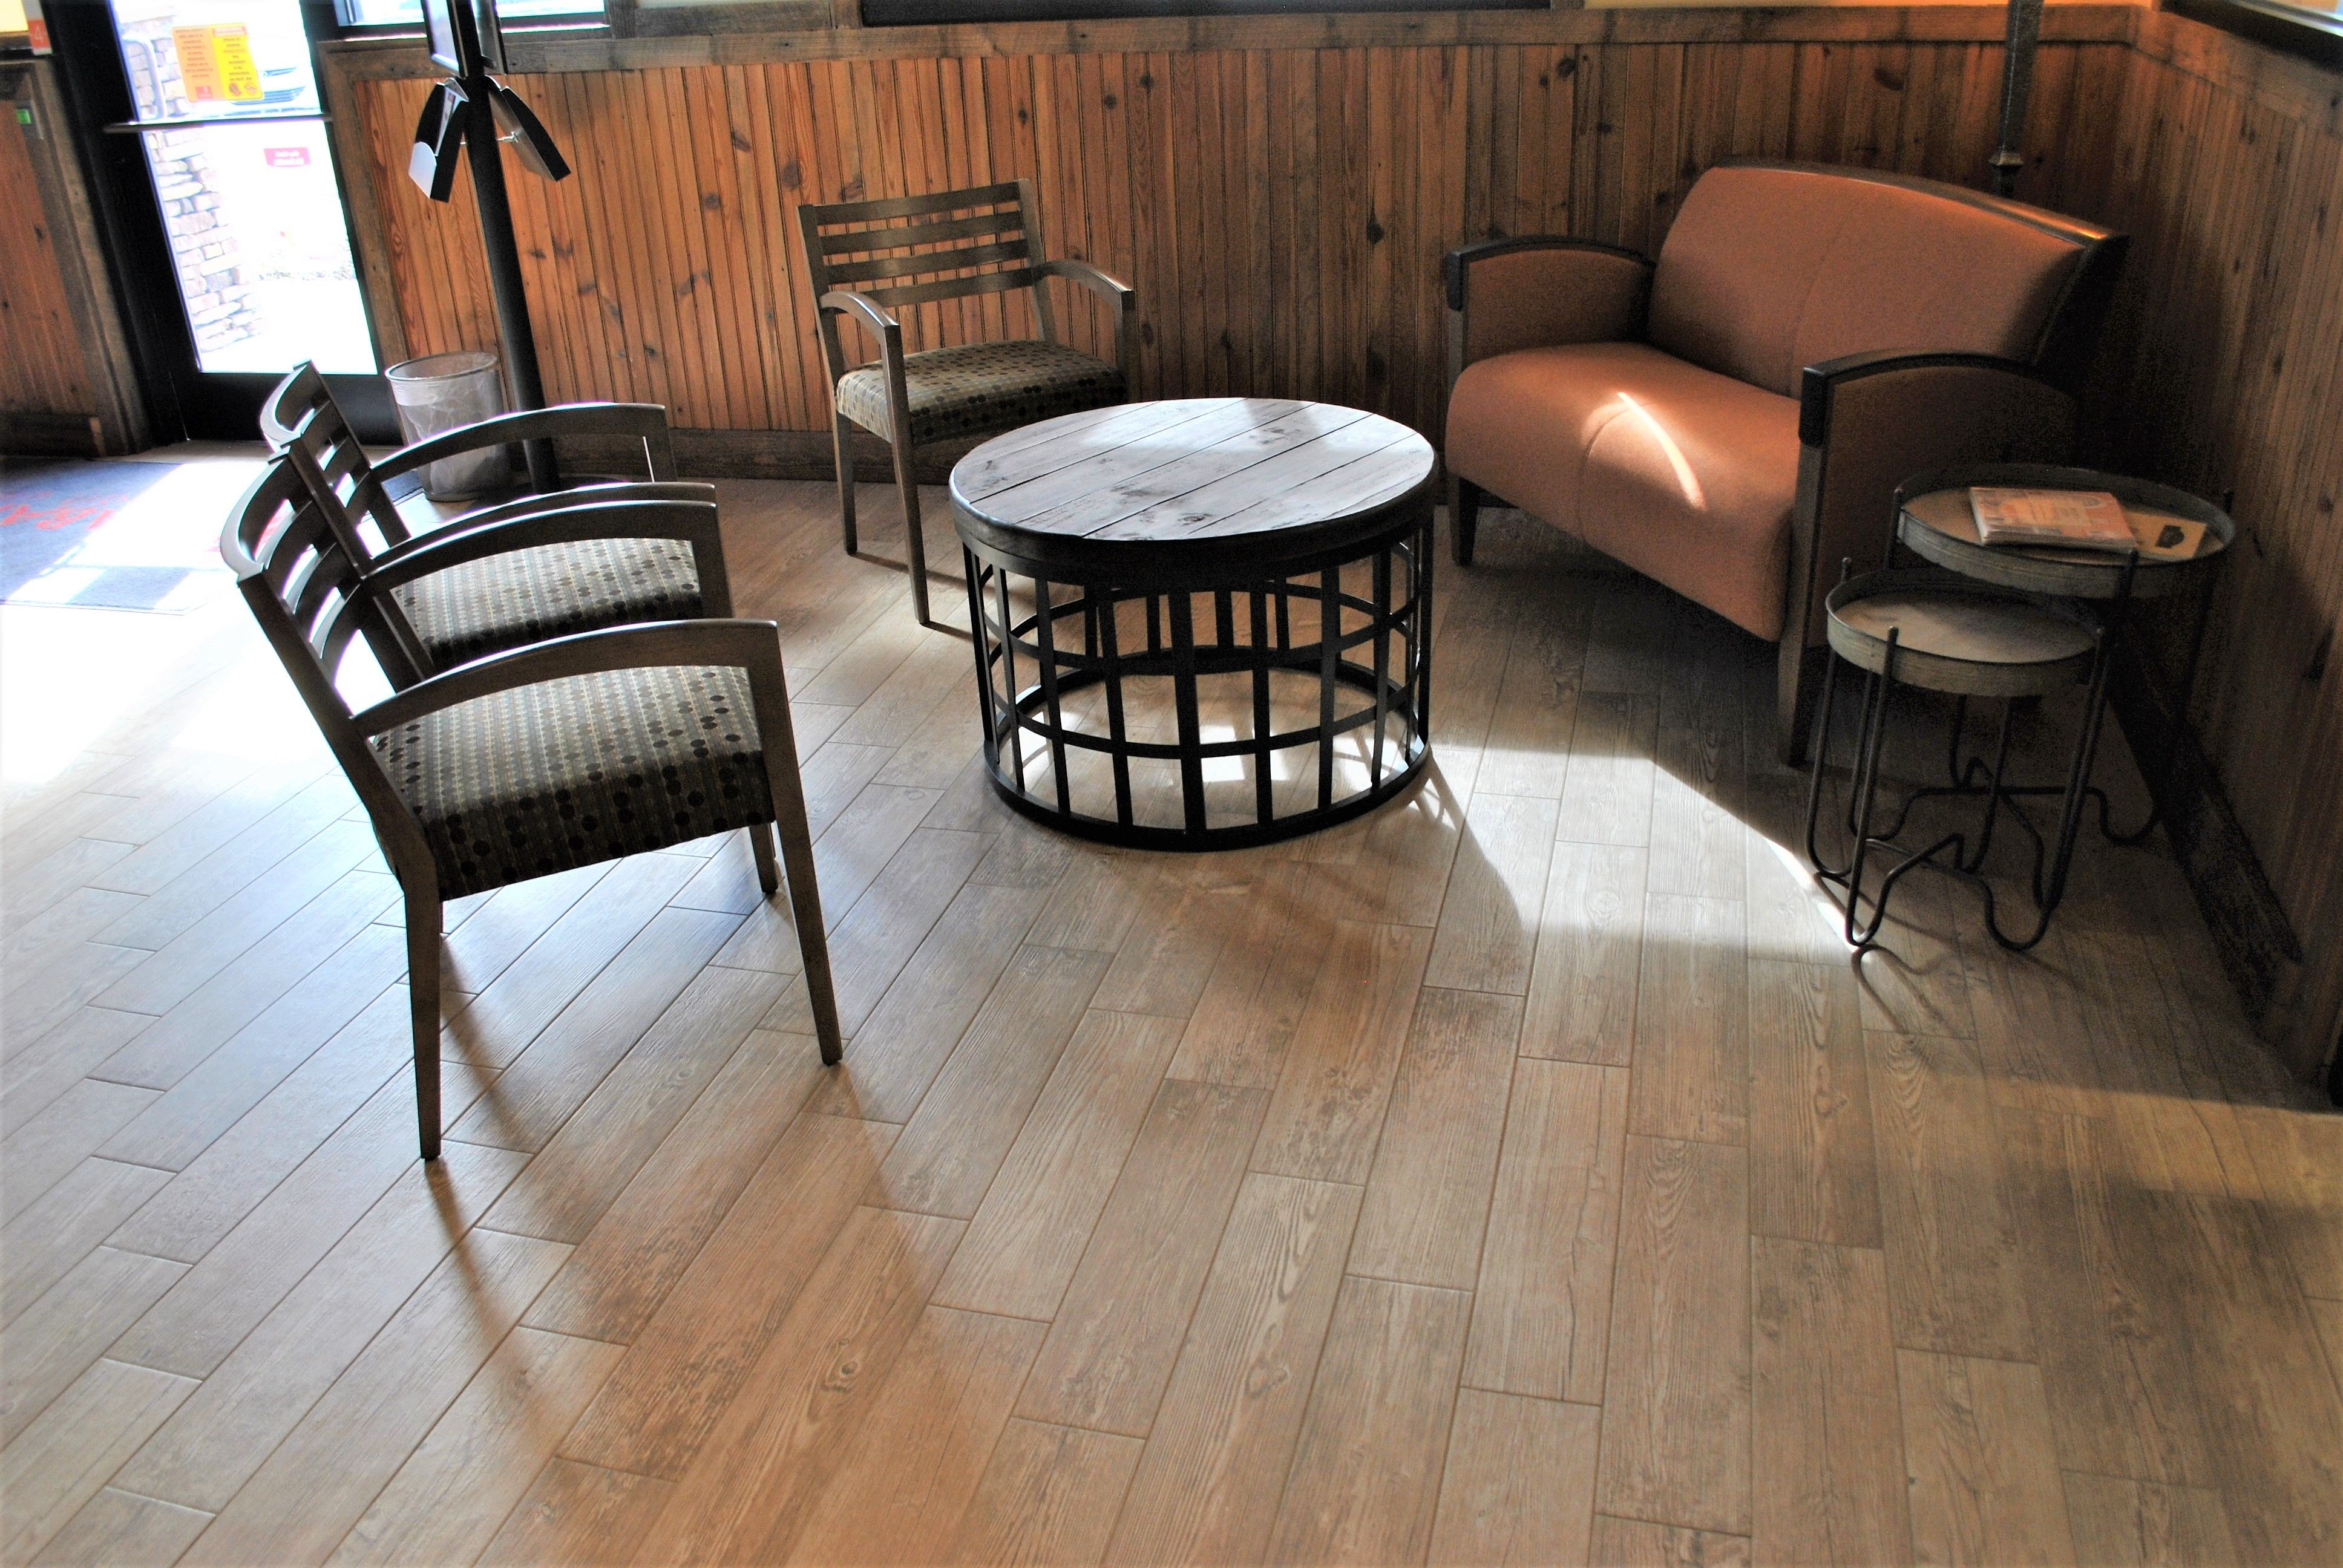 Our team offers wood flooring installations for your